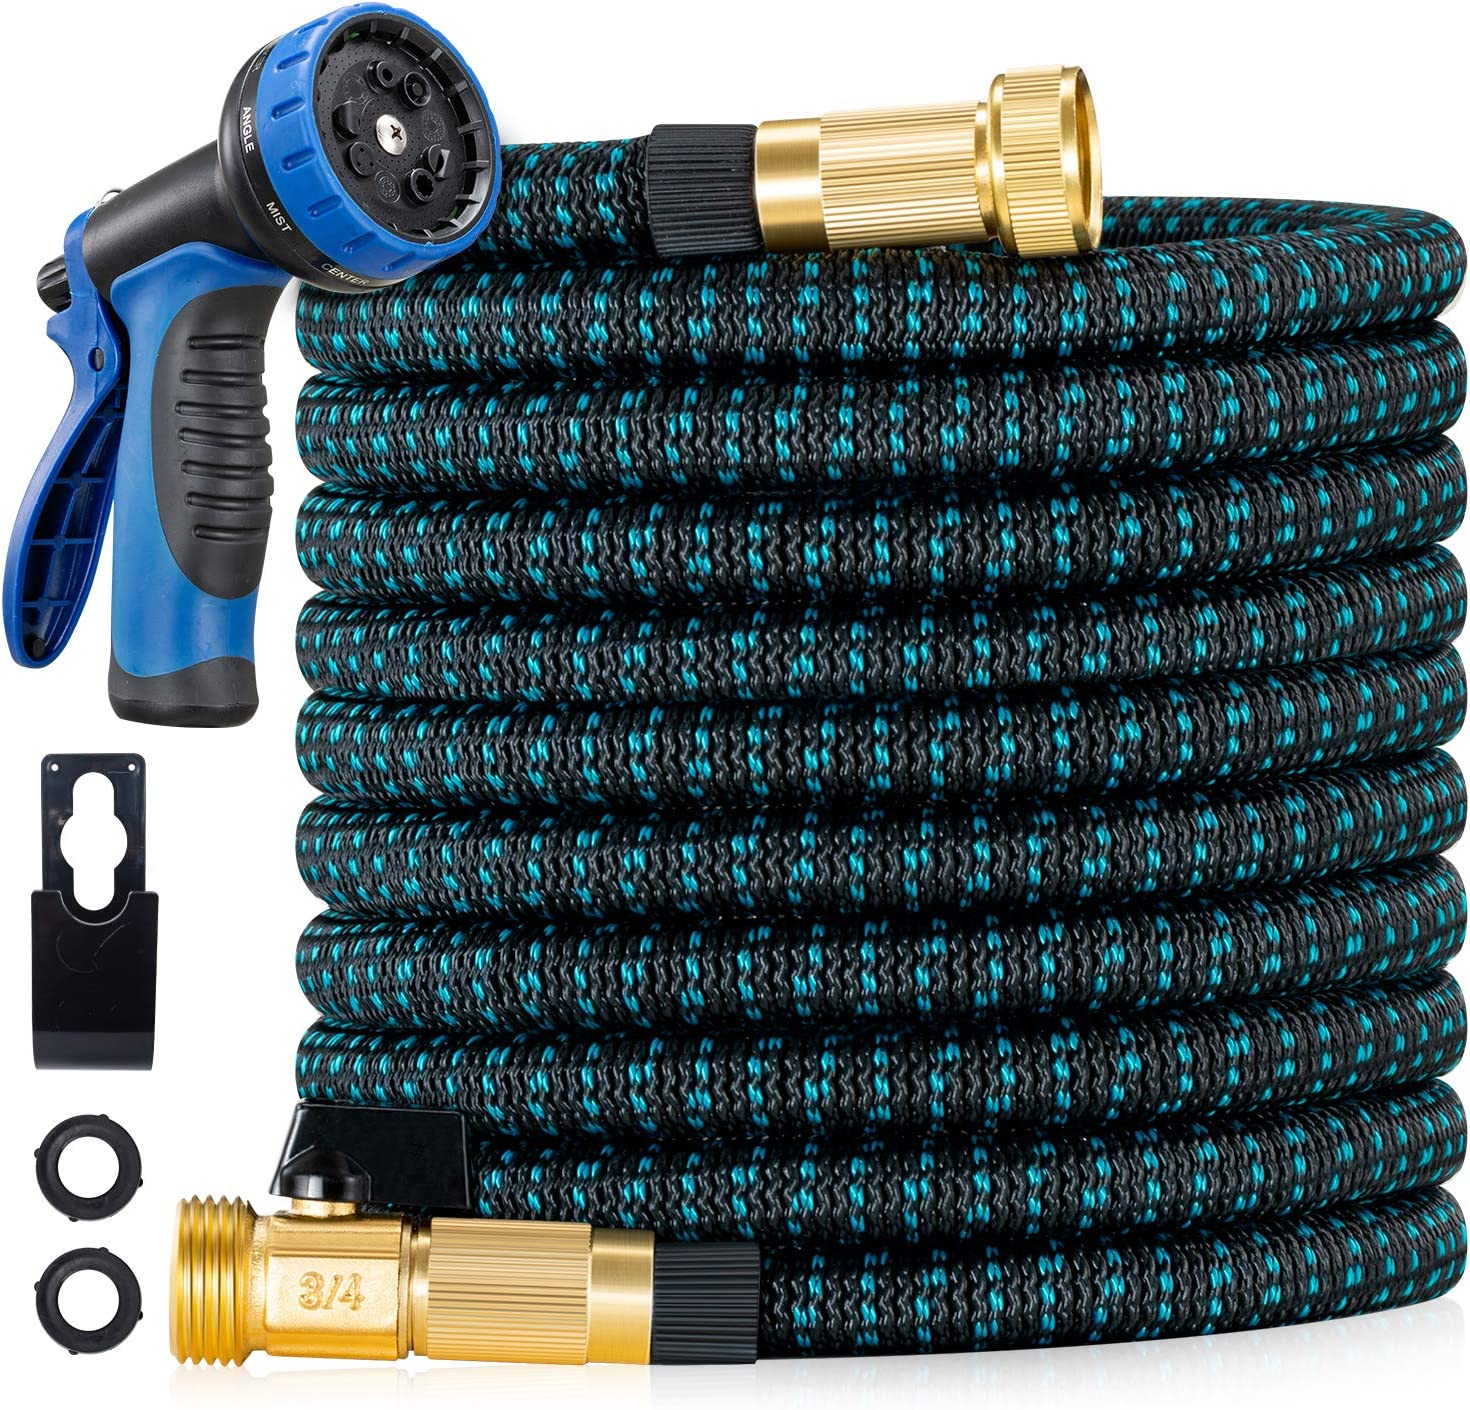 LINQUO 150 ft Expandable Garden Hose - 2021 Upgraded Flexible Water Hose with 3/4